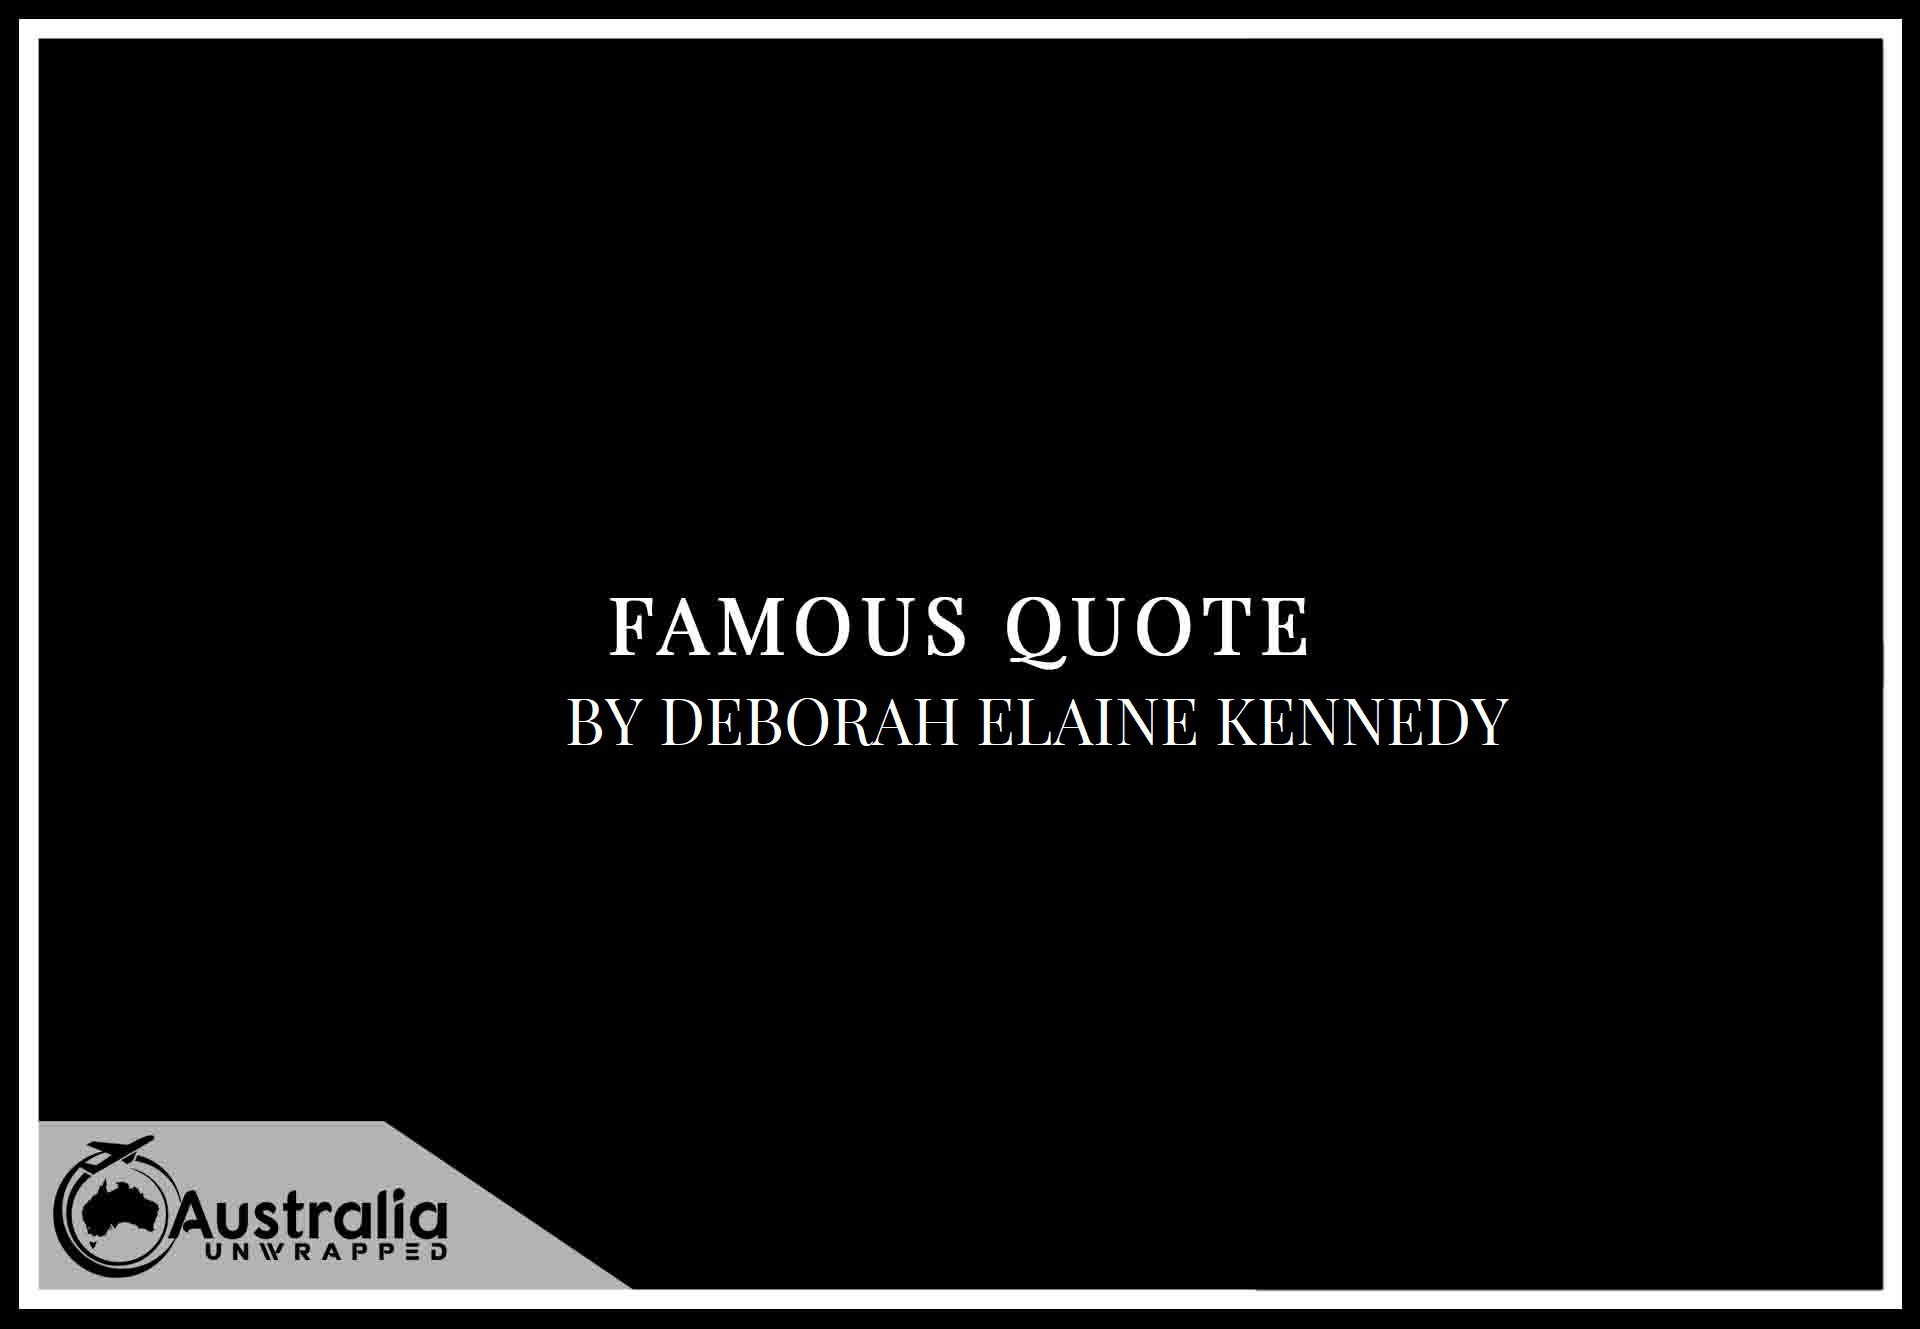 Top 1 Famous Quotes by Author Deborah Elaine Kennedy